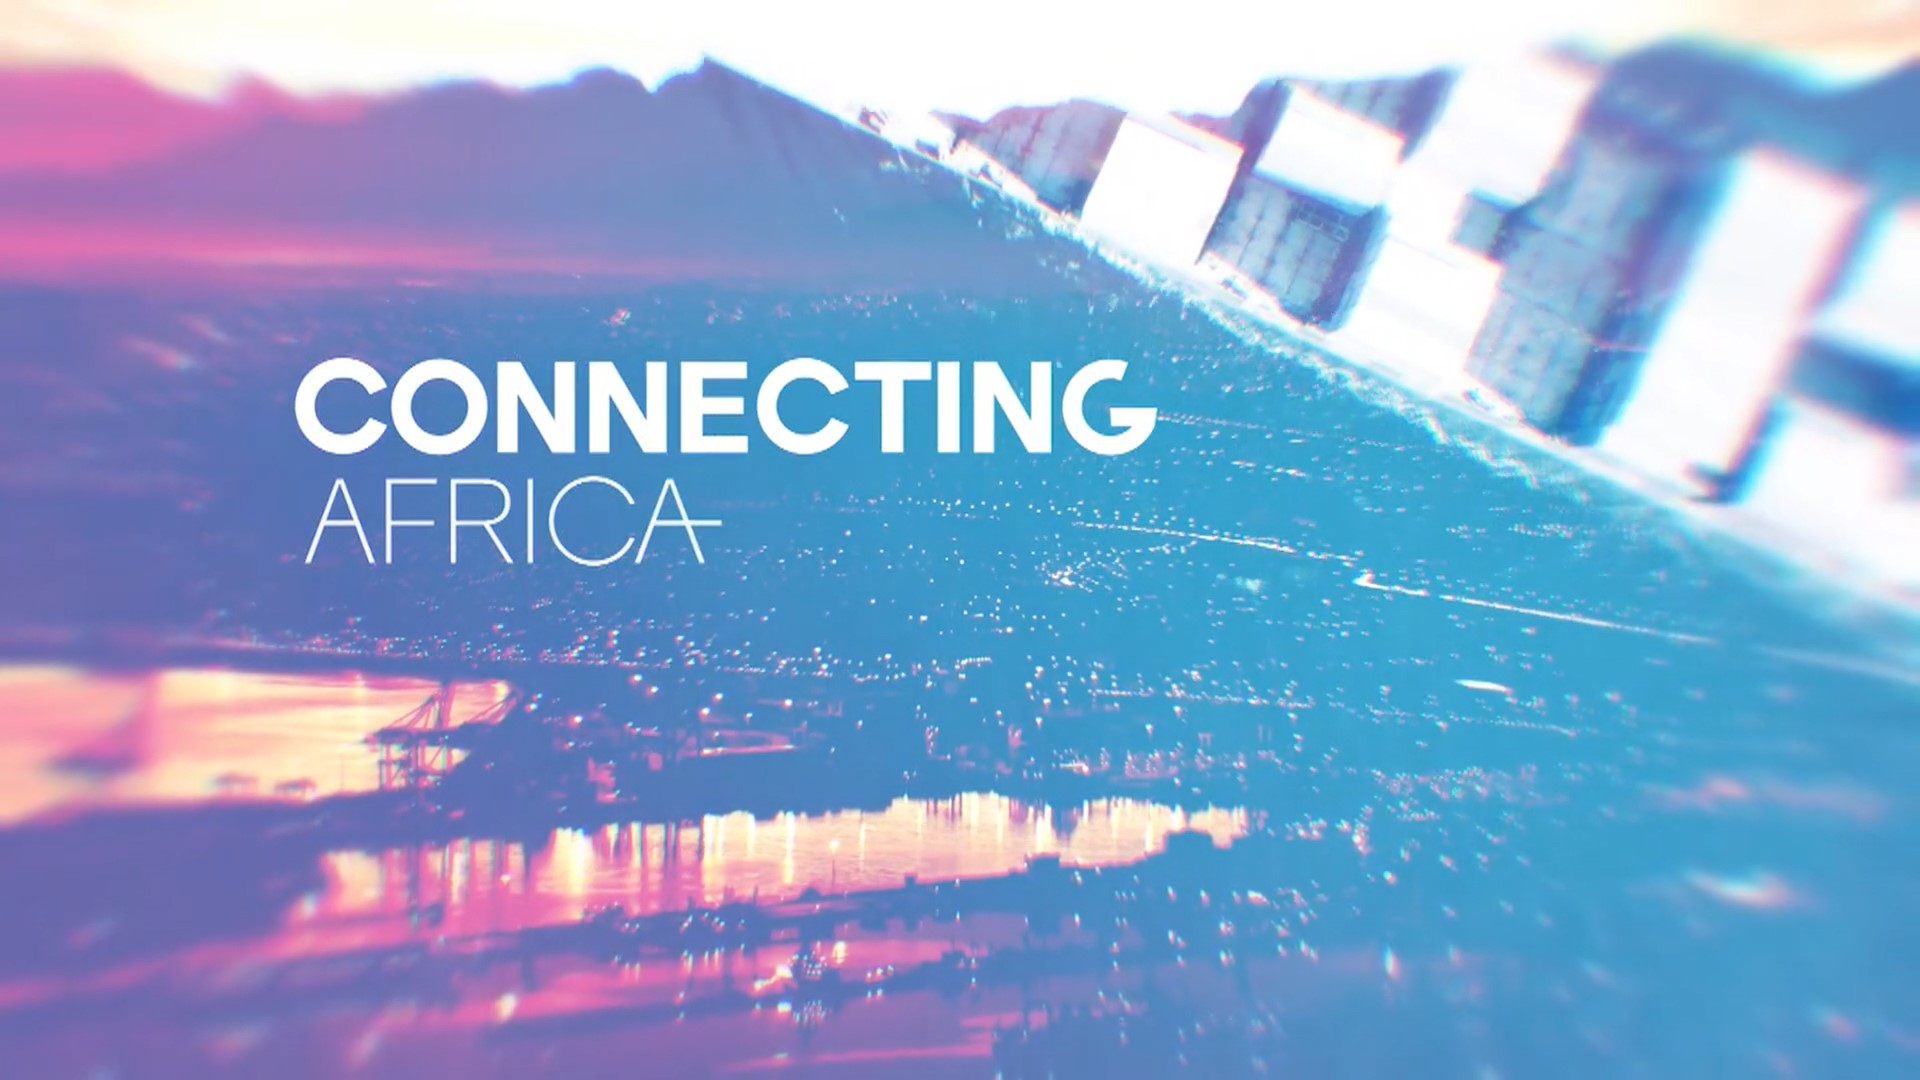 CNN's Connecting Africa explores transport infrastructure across the continent Brandspurng